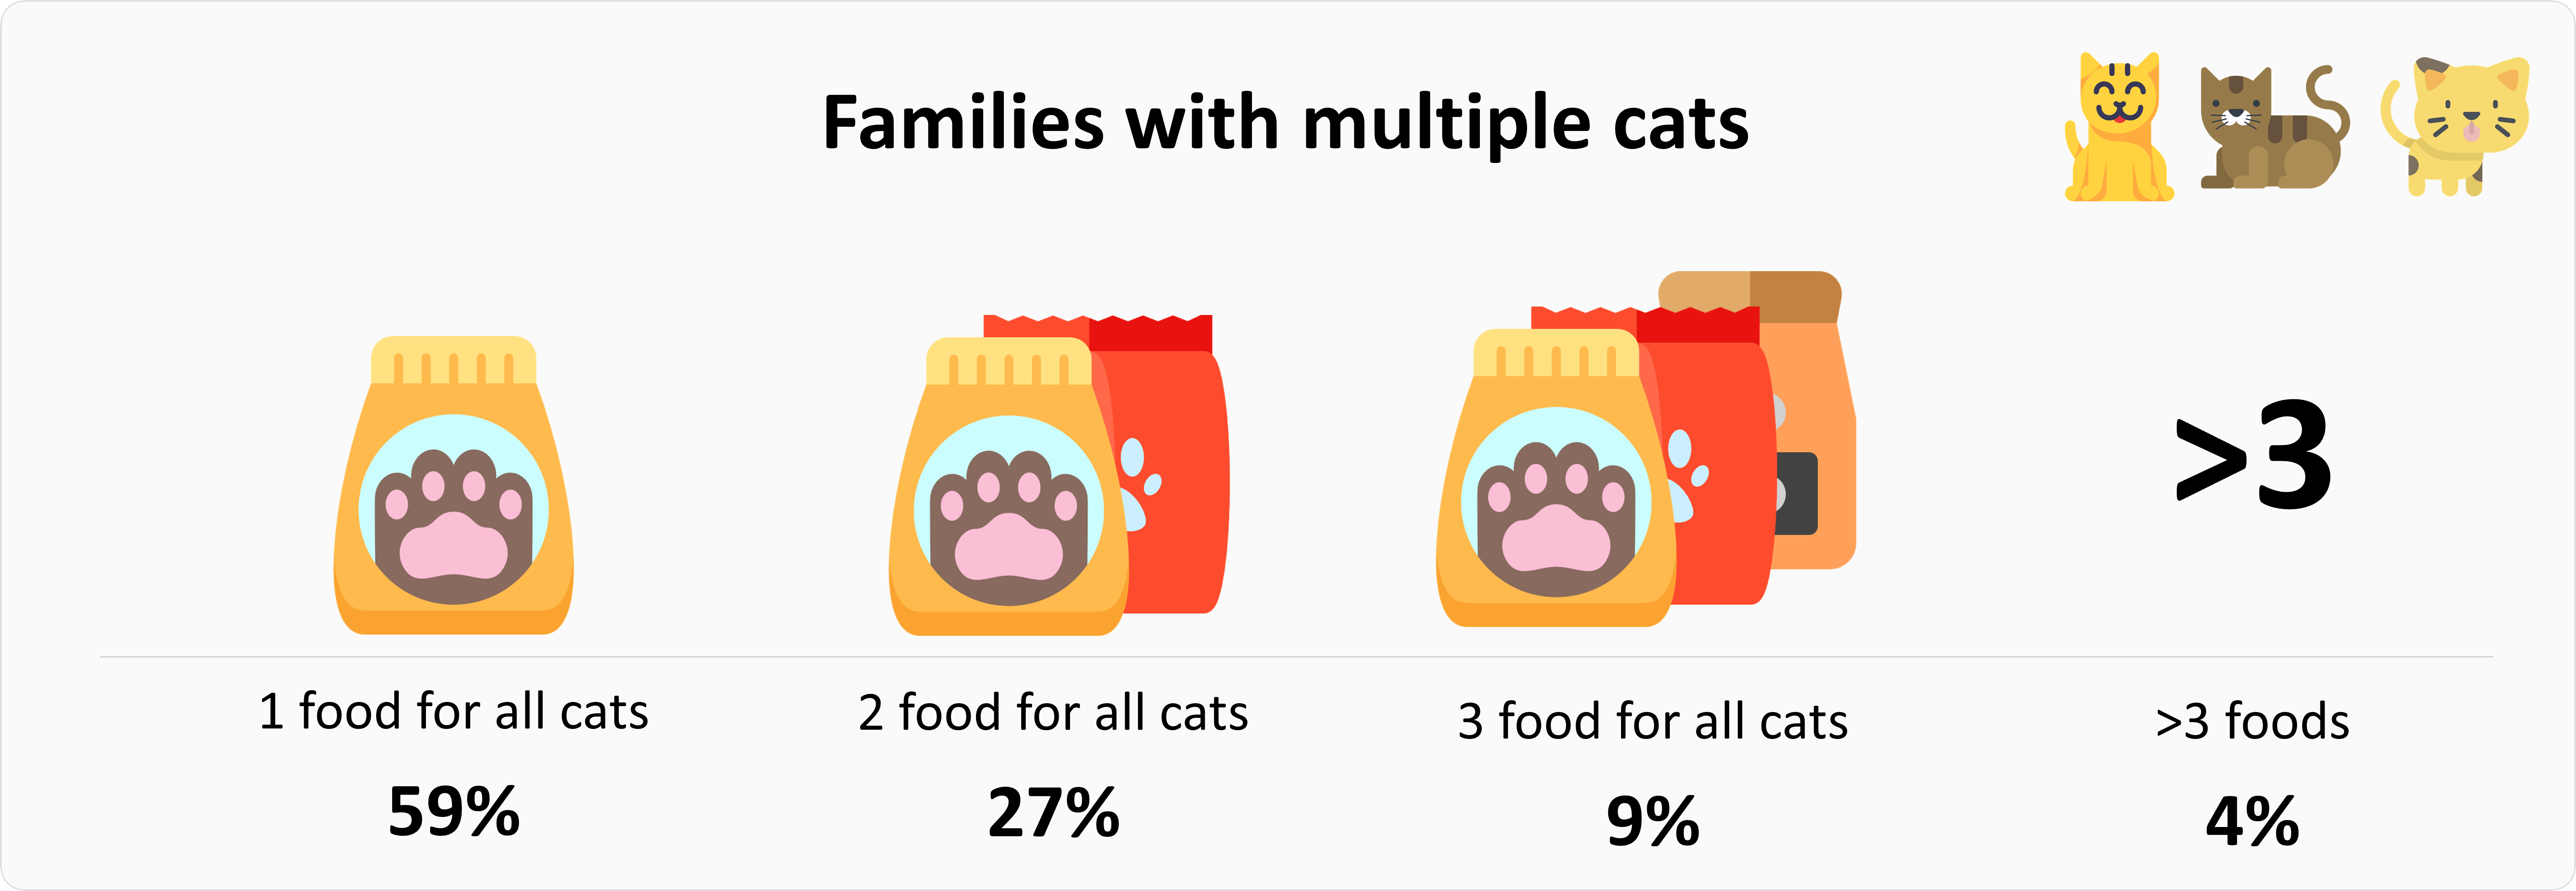 Food habits for families with many cats